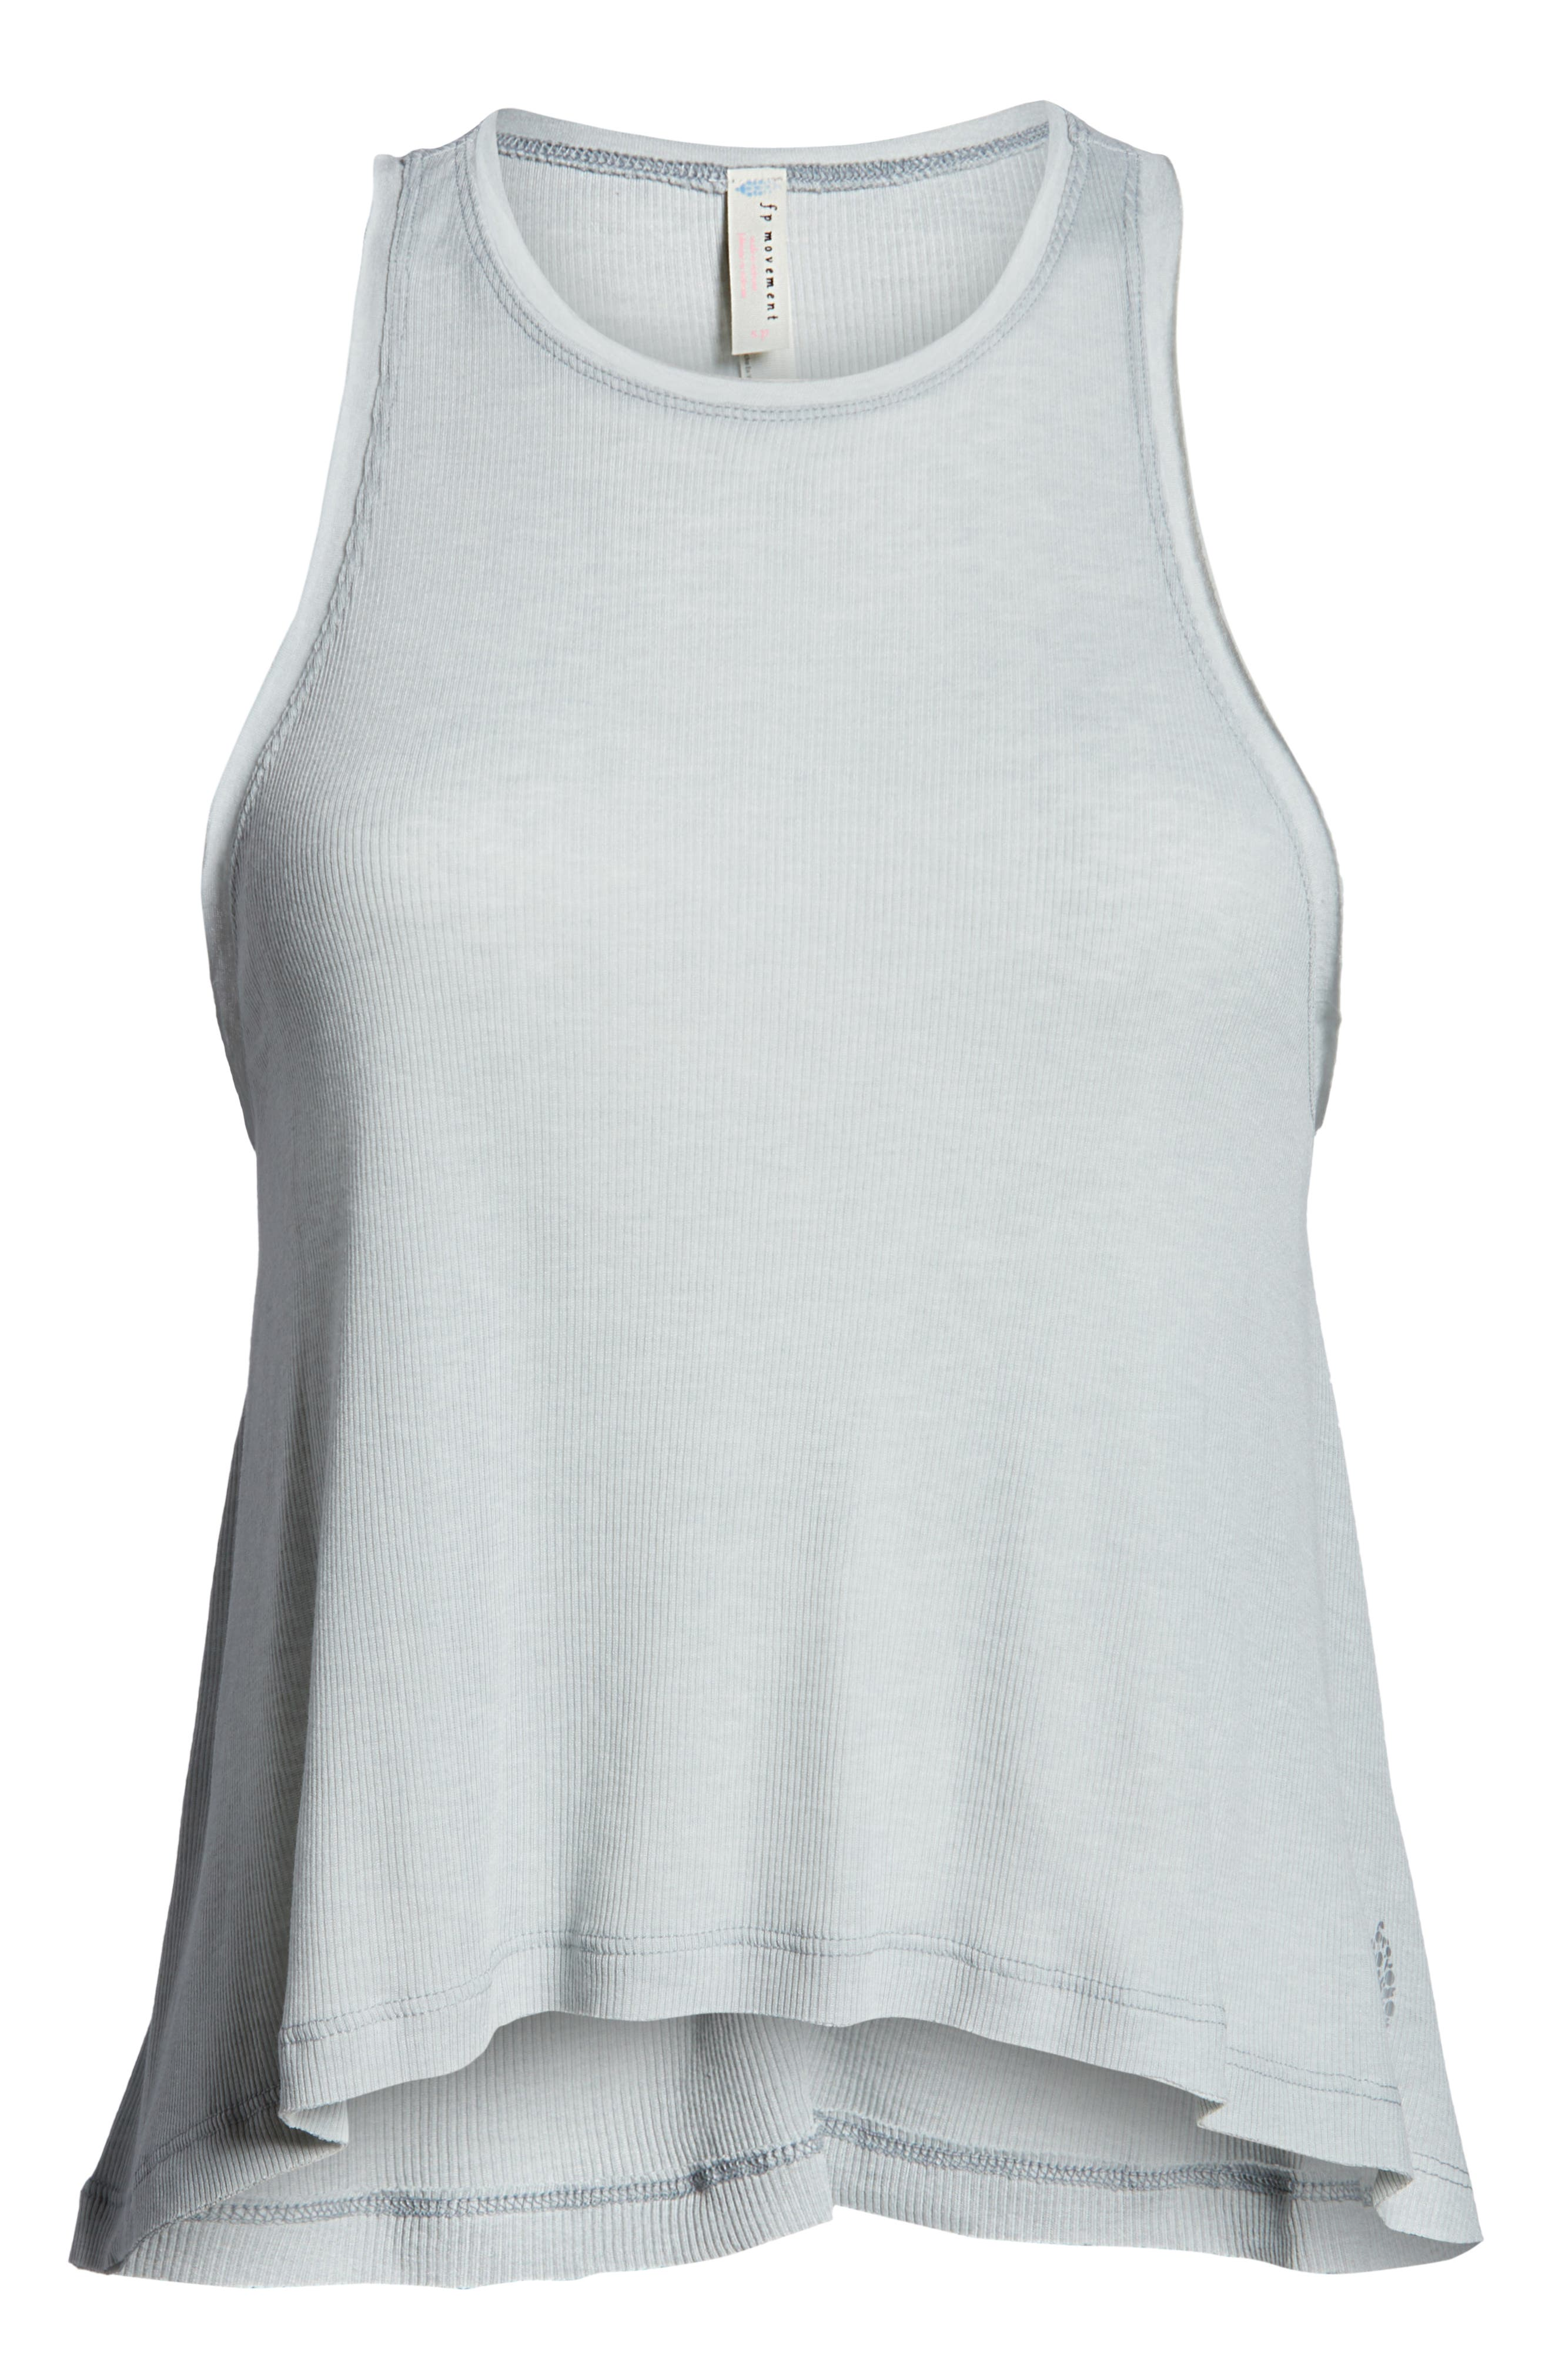 FREE PEOPLE MOVEMENT,                             Free People FP Movement The Rise & Fall Tank,                             Alternate thumbnail 7, color,                             GREY